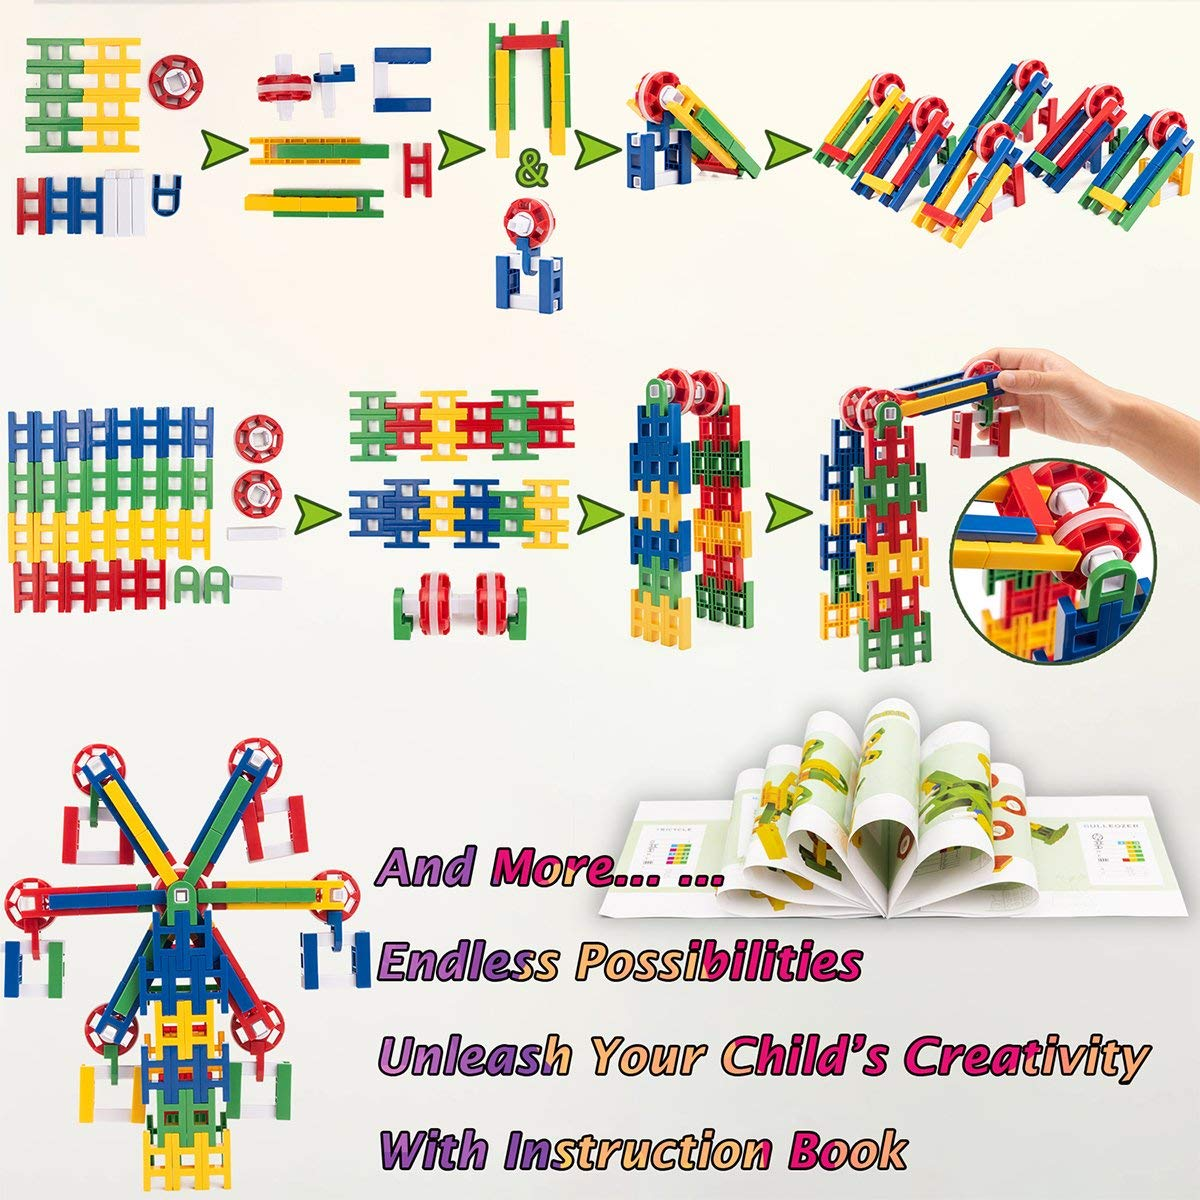 8ca24d641 ... 208 Pieces STEM Learning Toy Engineering Construction Building Blocks